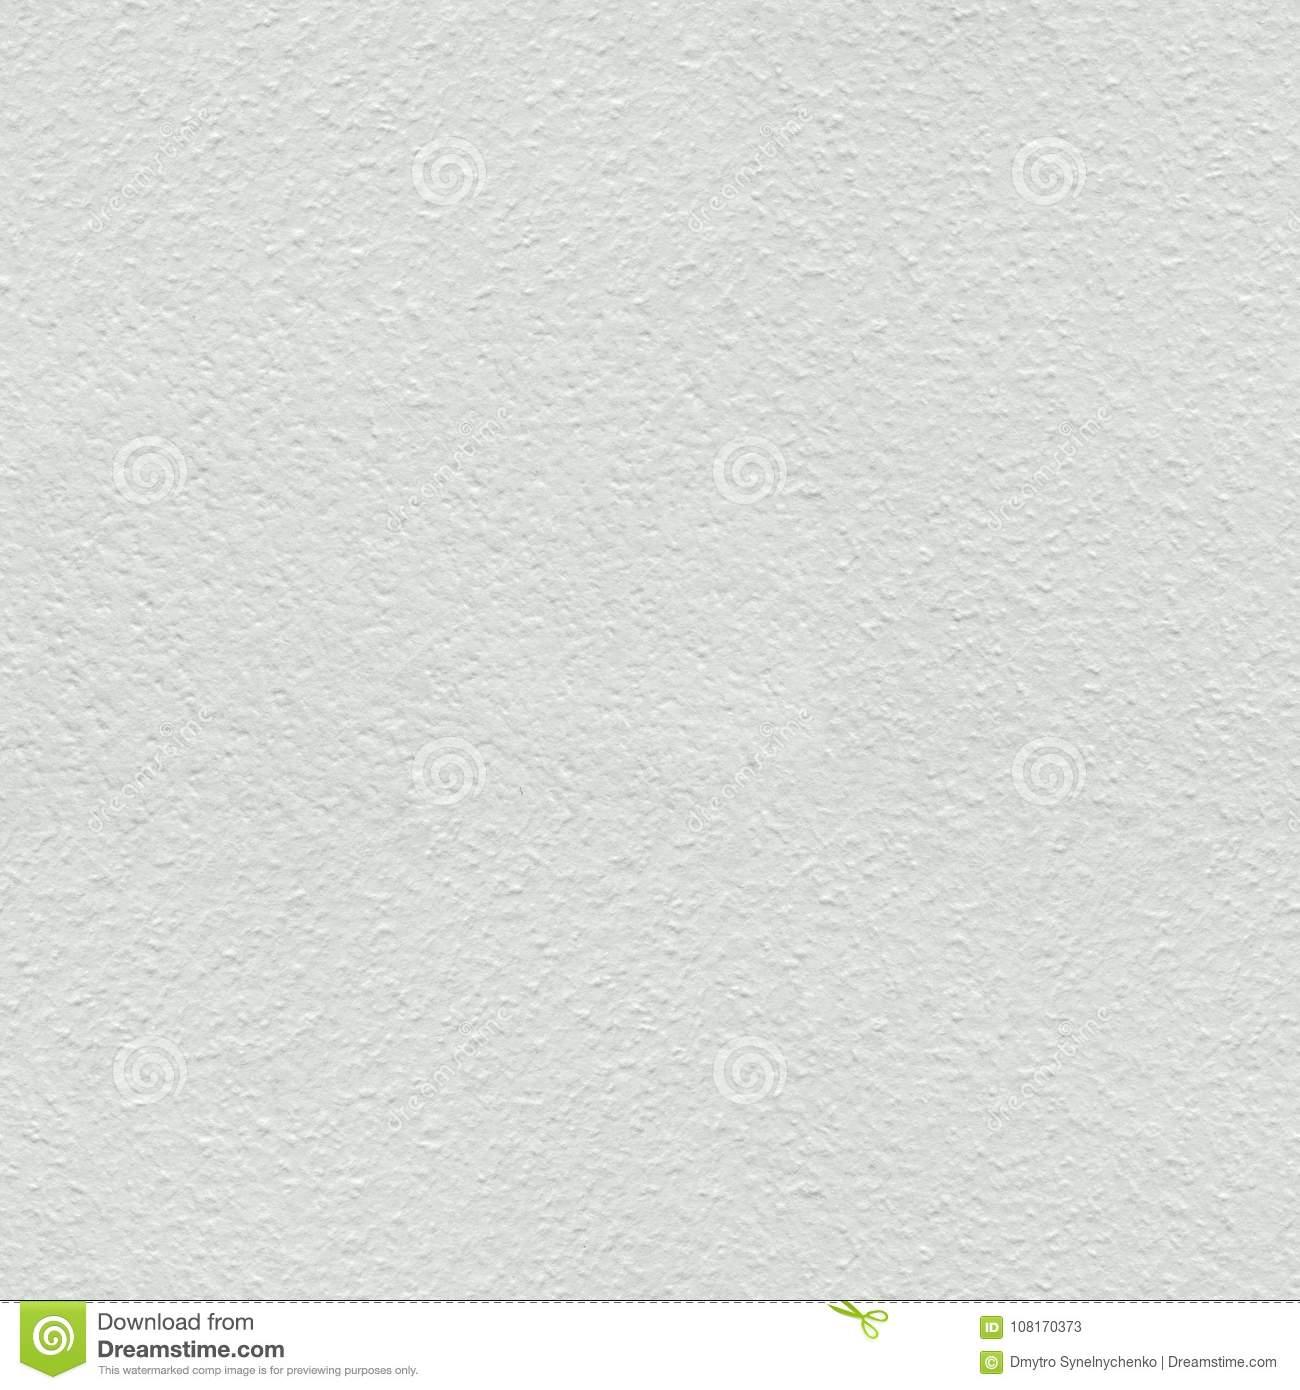 White paper texture. No dust. Seamless square background, tile r